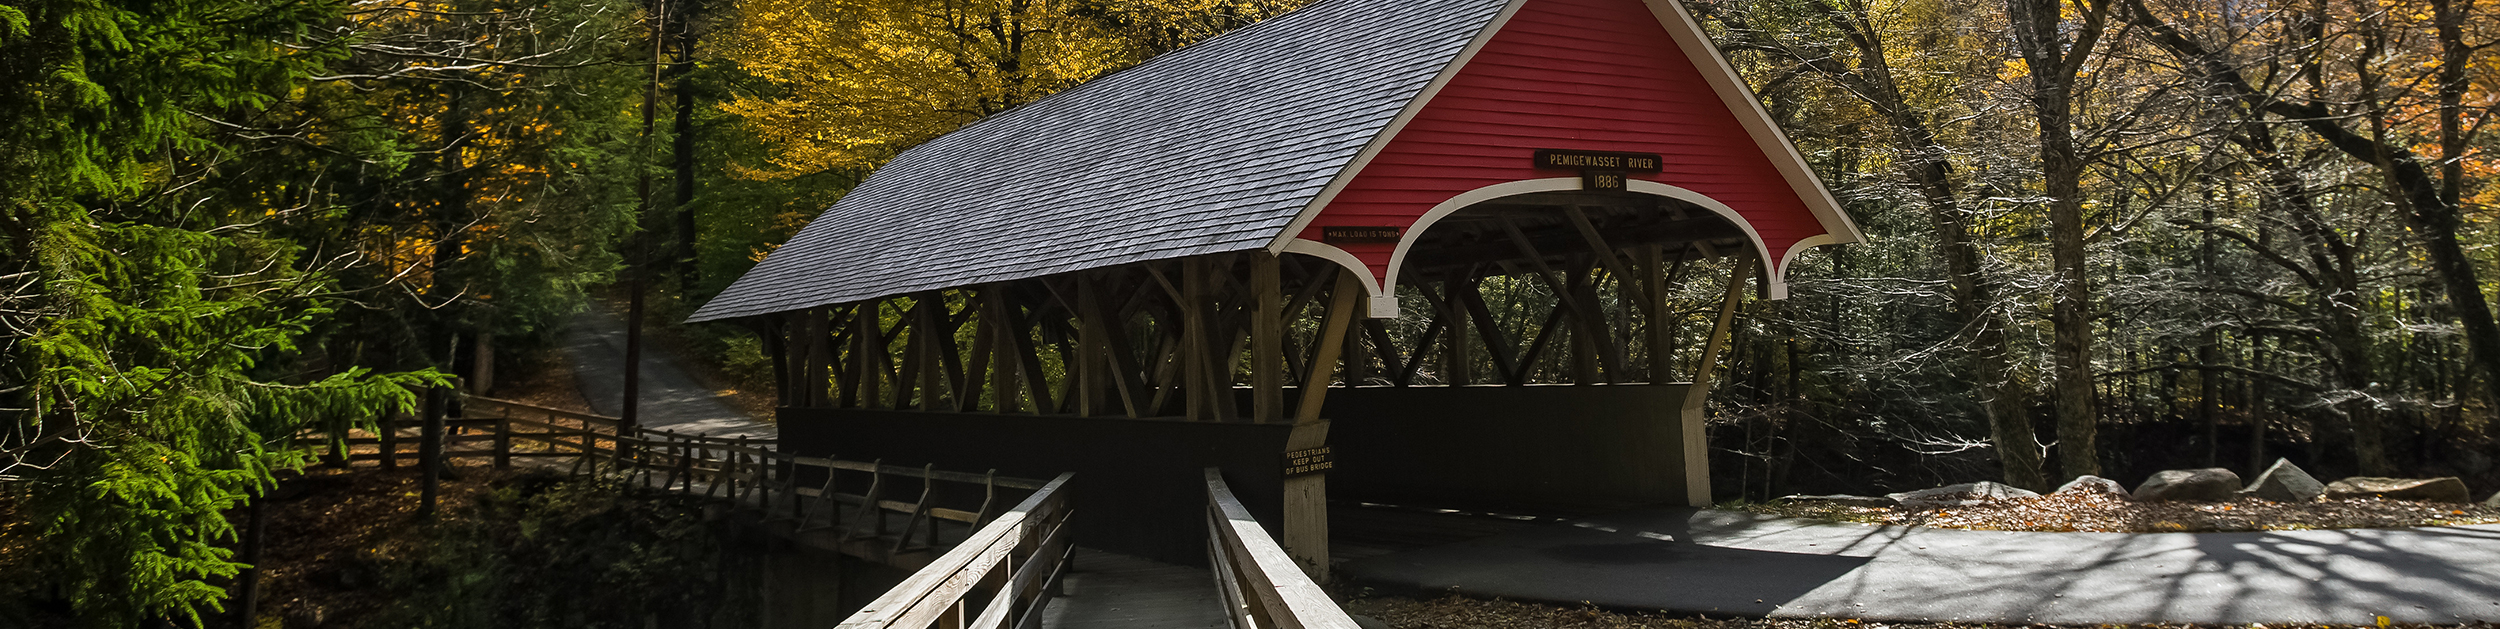 small covered bridge in New Hampshire labelled Pemigewasset River 1886